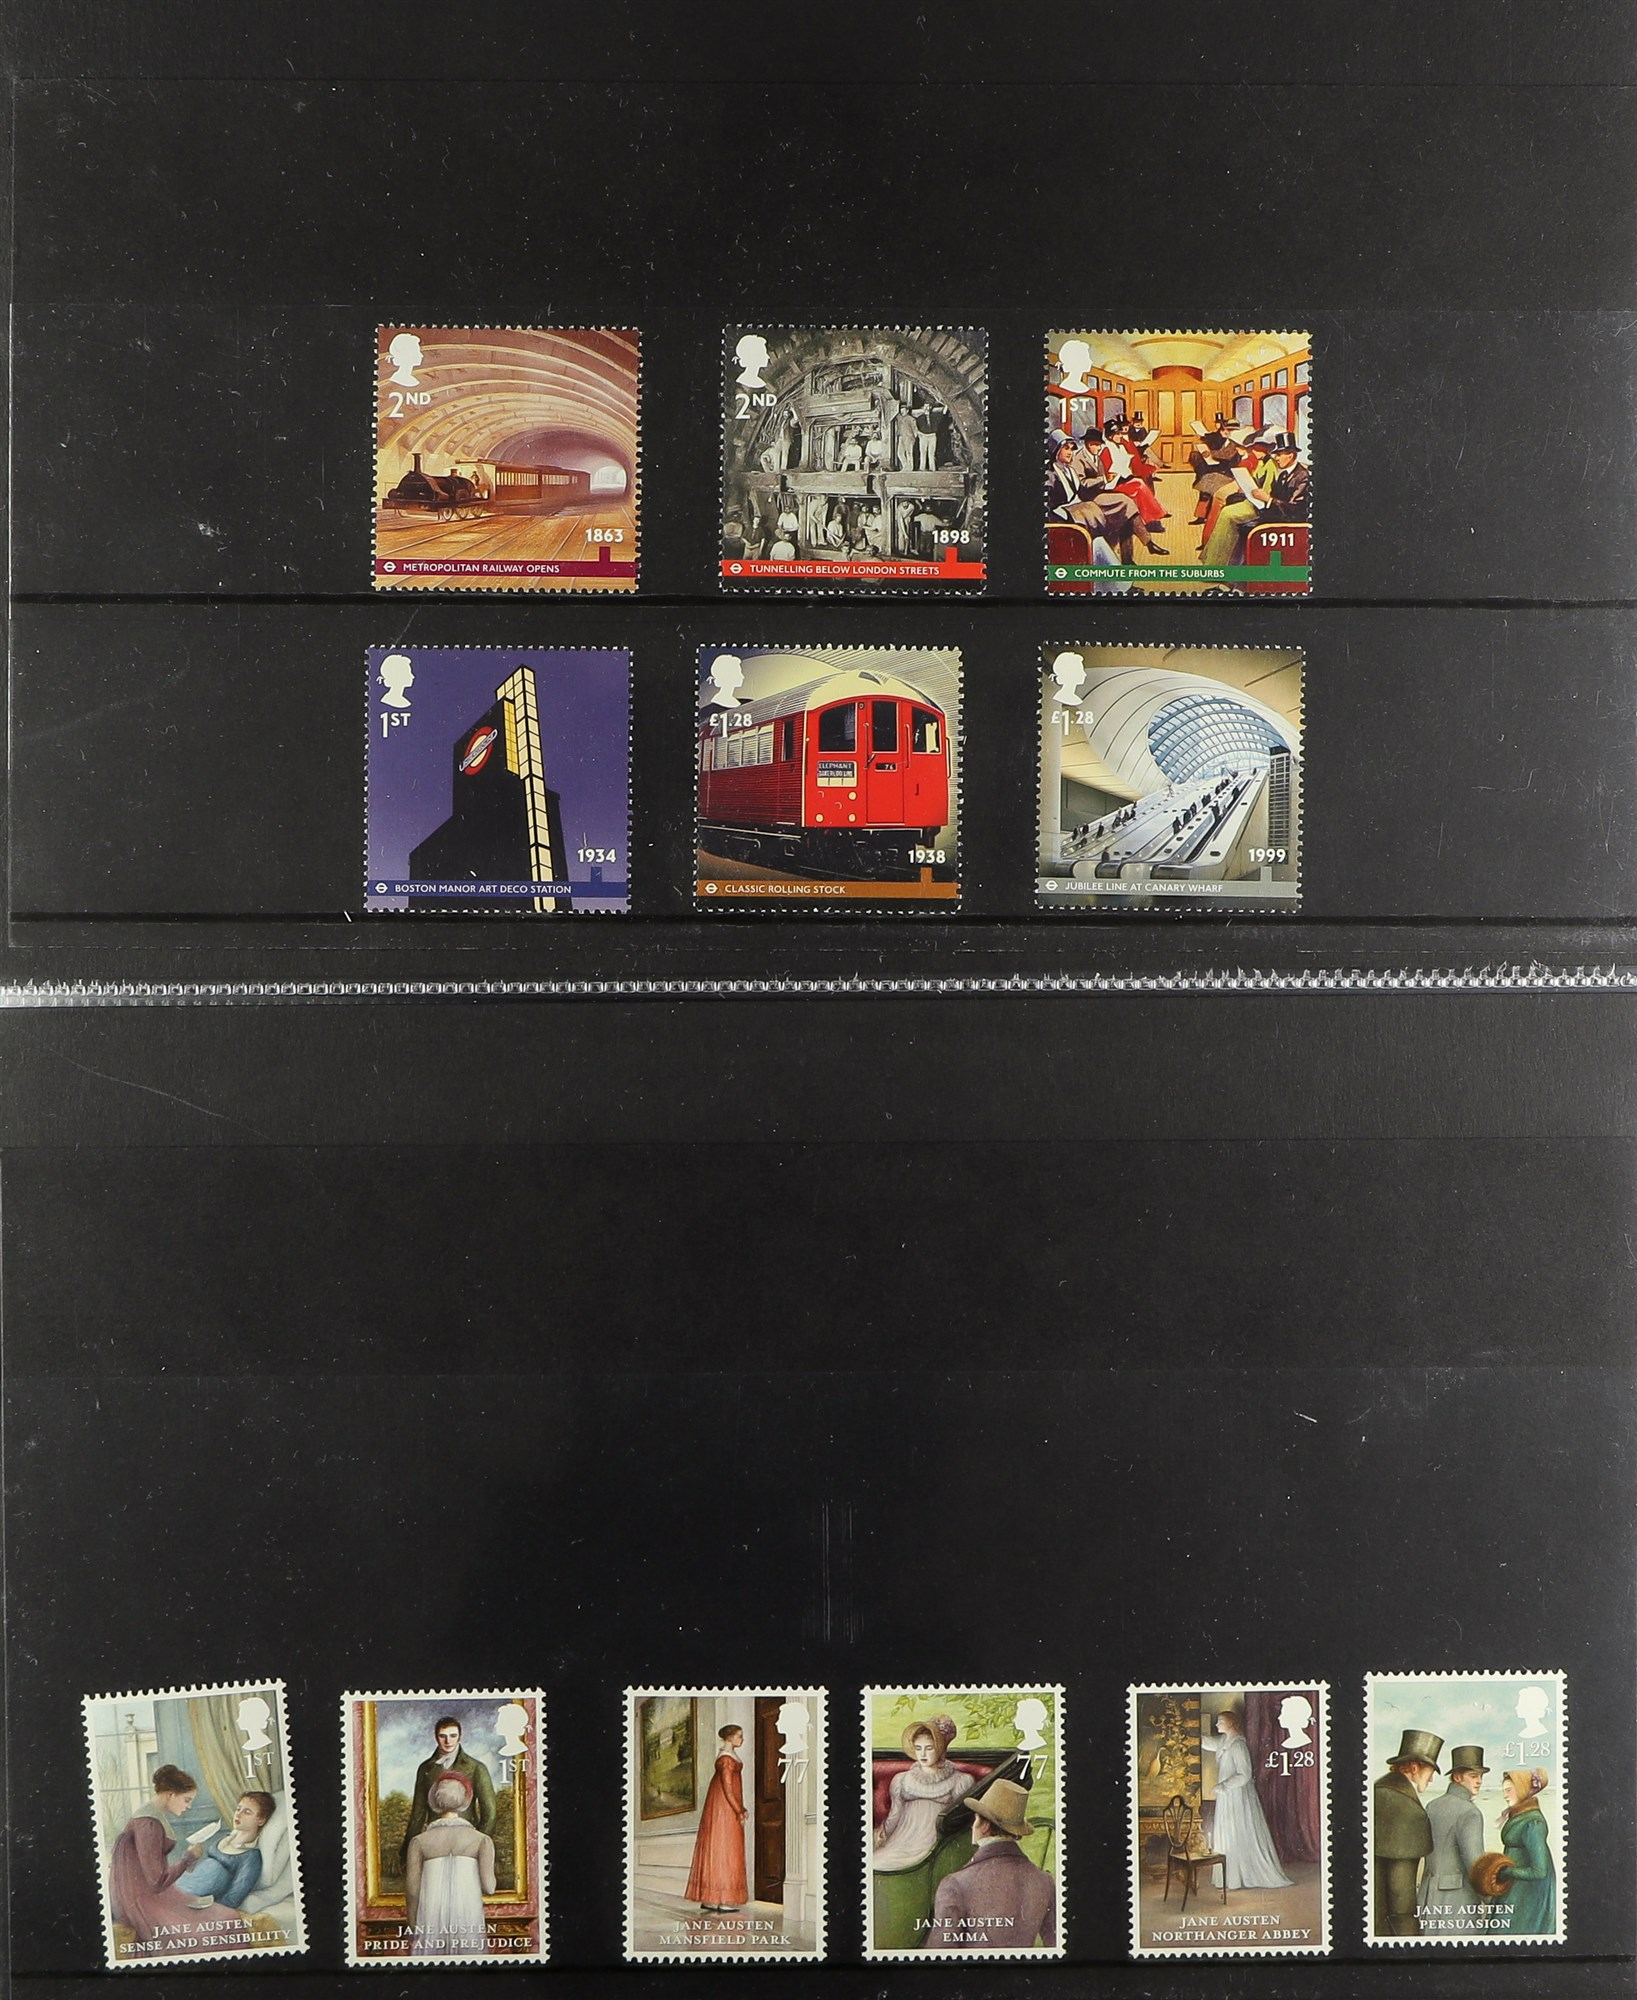 GB.ELIZABETH II 2013 - 2020 COMPREHENSIVE MINT COLLECTION which includes the commemorative stamp